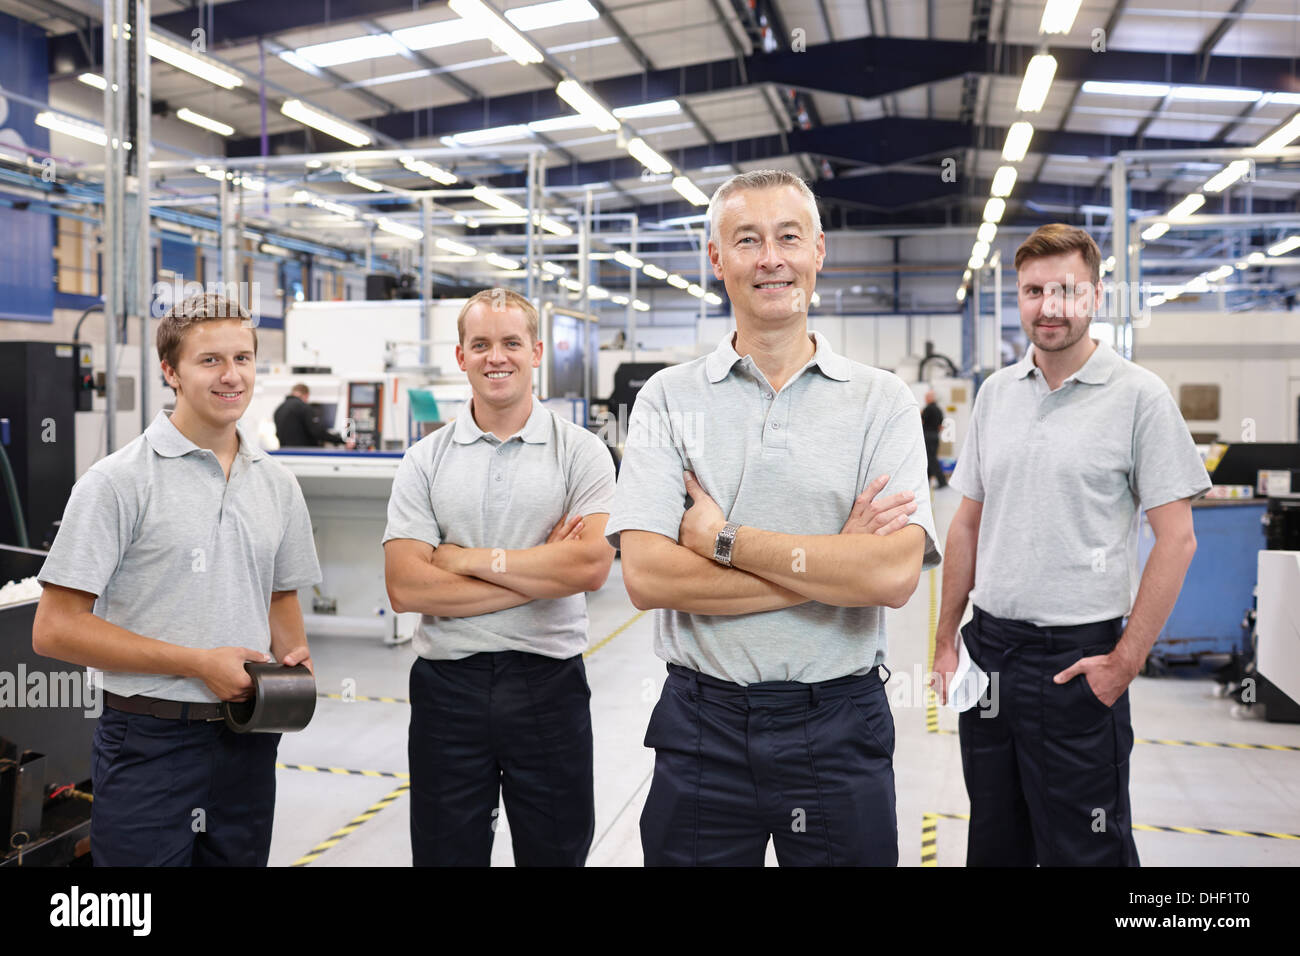 Portrait of manager and workers in engineering factory - Stock Image